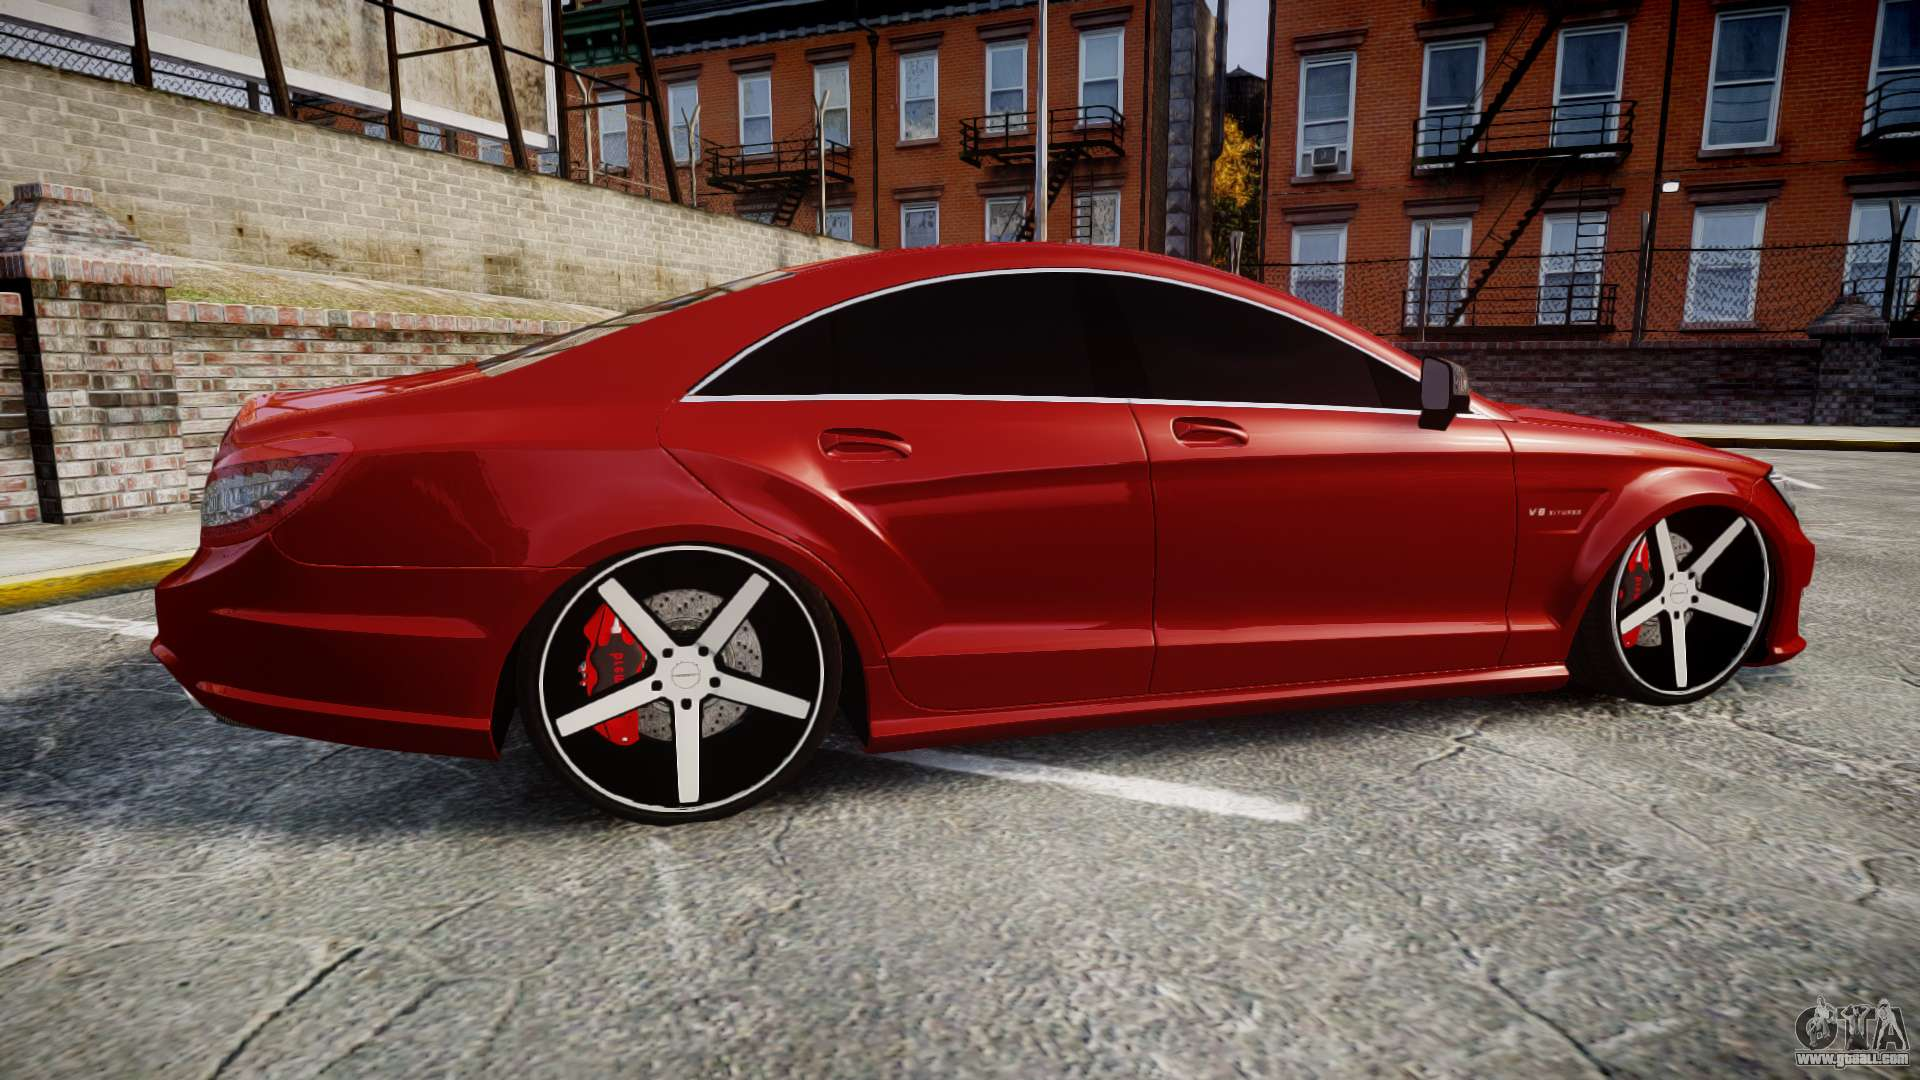 Mercedes benz cls 63 amg vossen for gta 4 for Mercedes benz cls 63 amg coupe